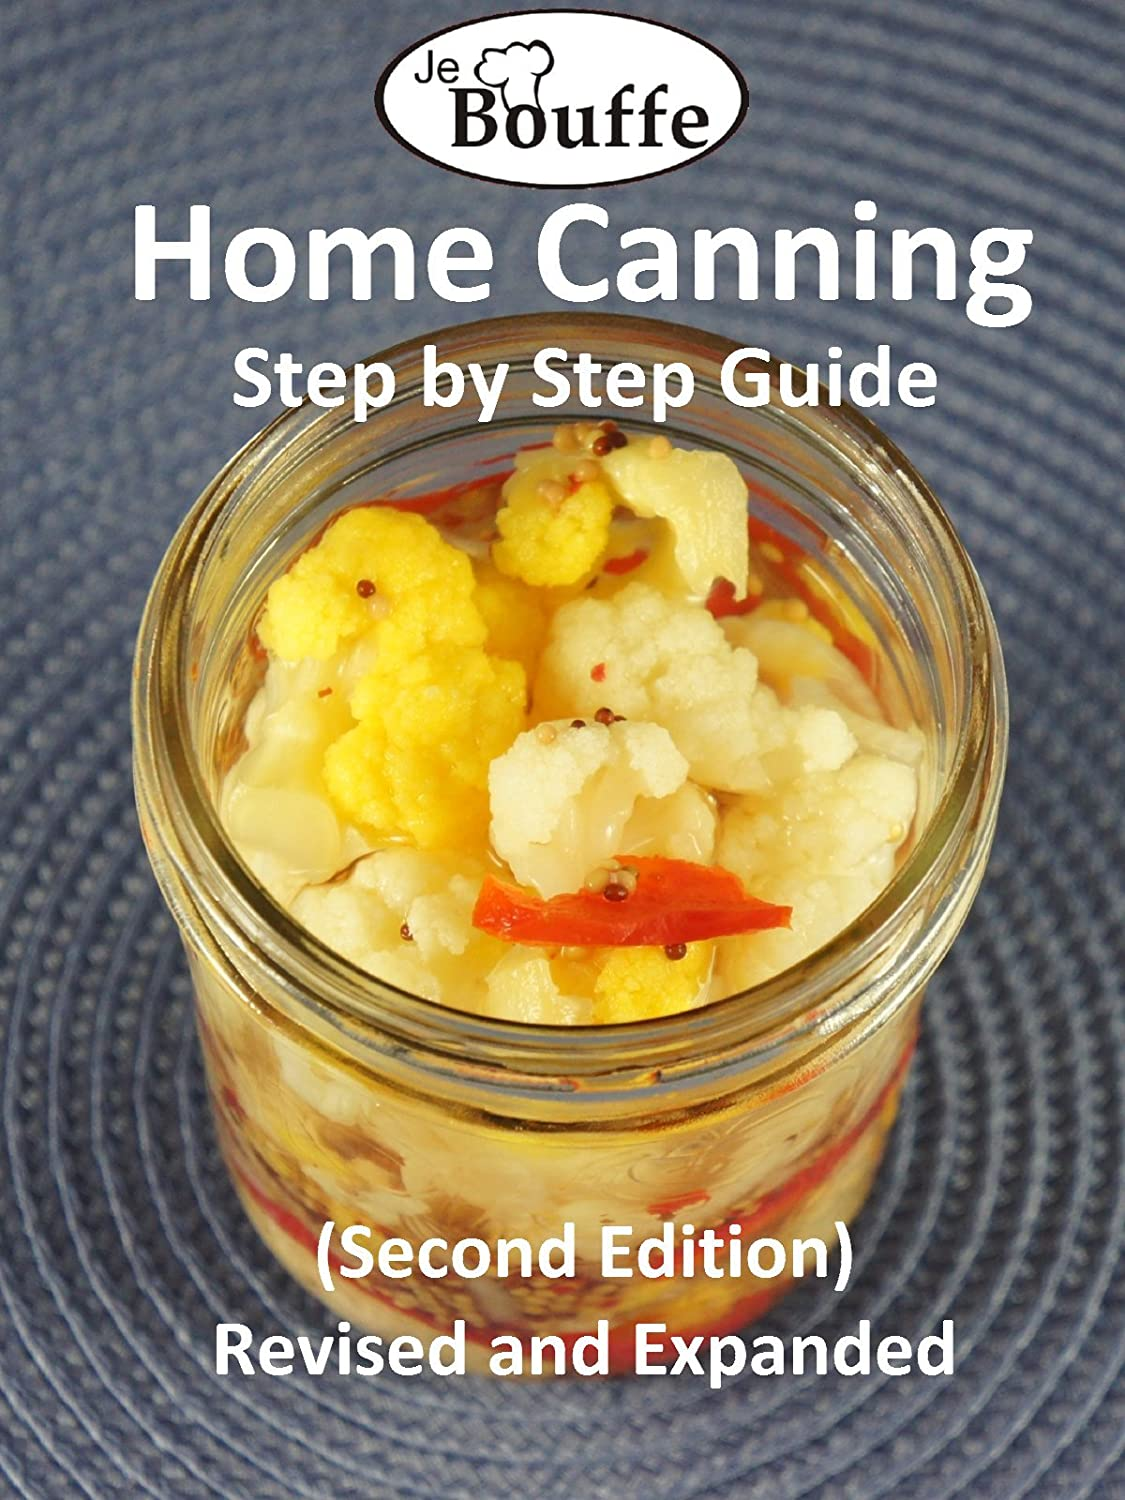 http://www.amazon.com/JeBouffe-Canning-second-Revised-Expanded-ebook/dp/B0057H14KG/ref=sr_1_10?s=digital-text&ie=UTF8&qid=1407764077&sr=1-10&keywords=free+kindle+books